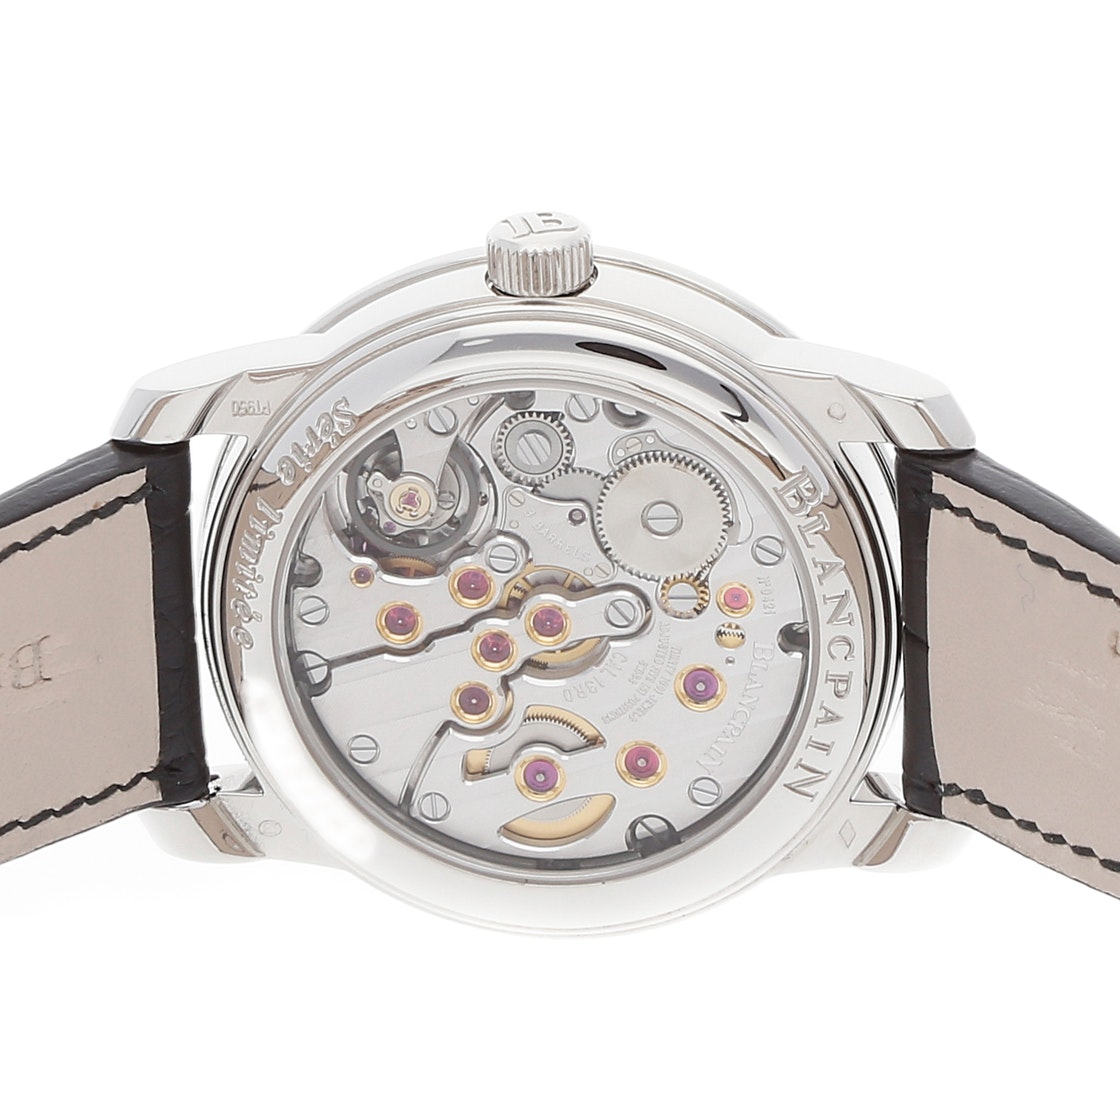 Blancpain Le Brassus 8 Jours Limited Edition 4213-3442-55B